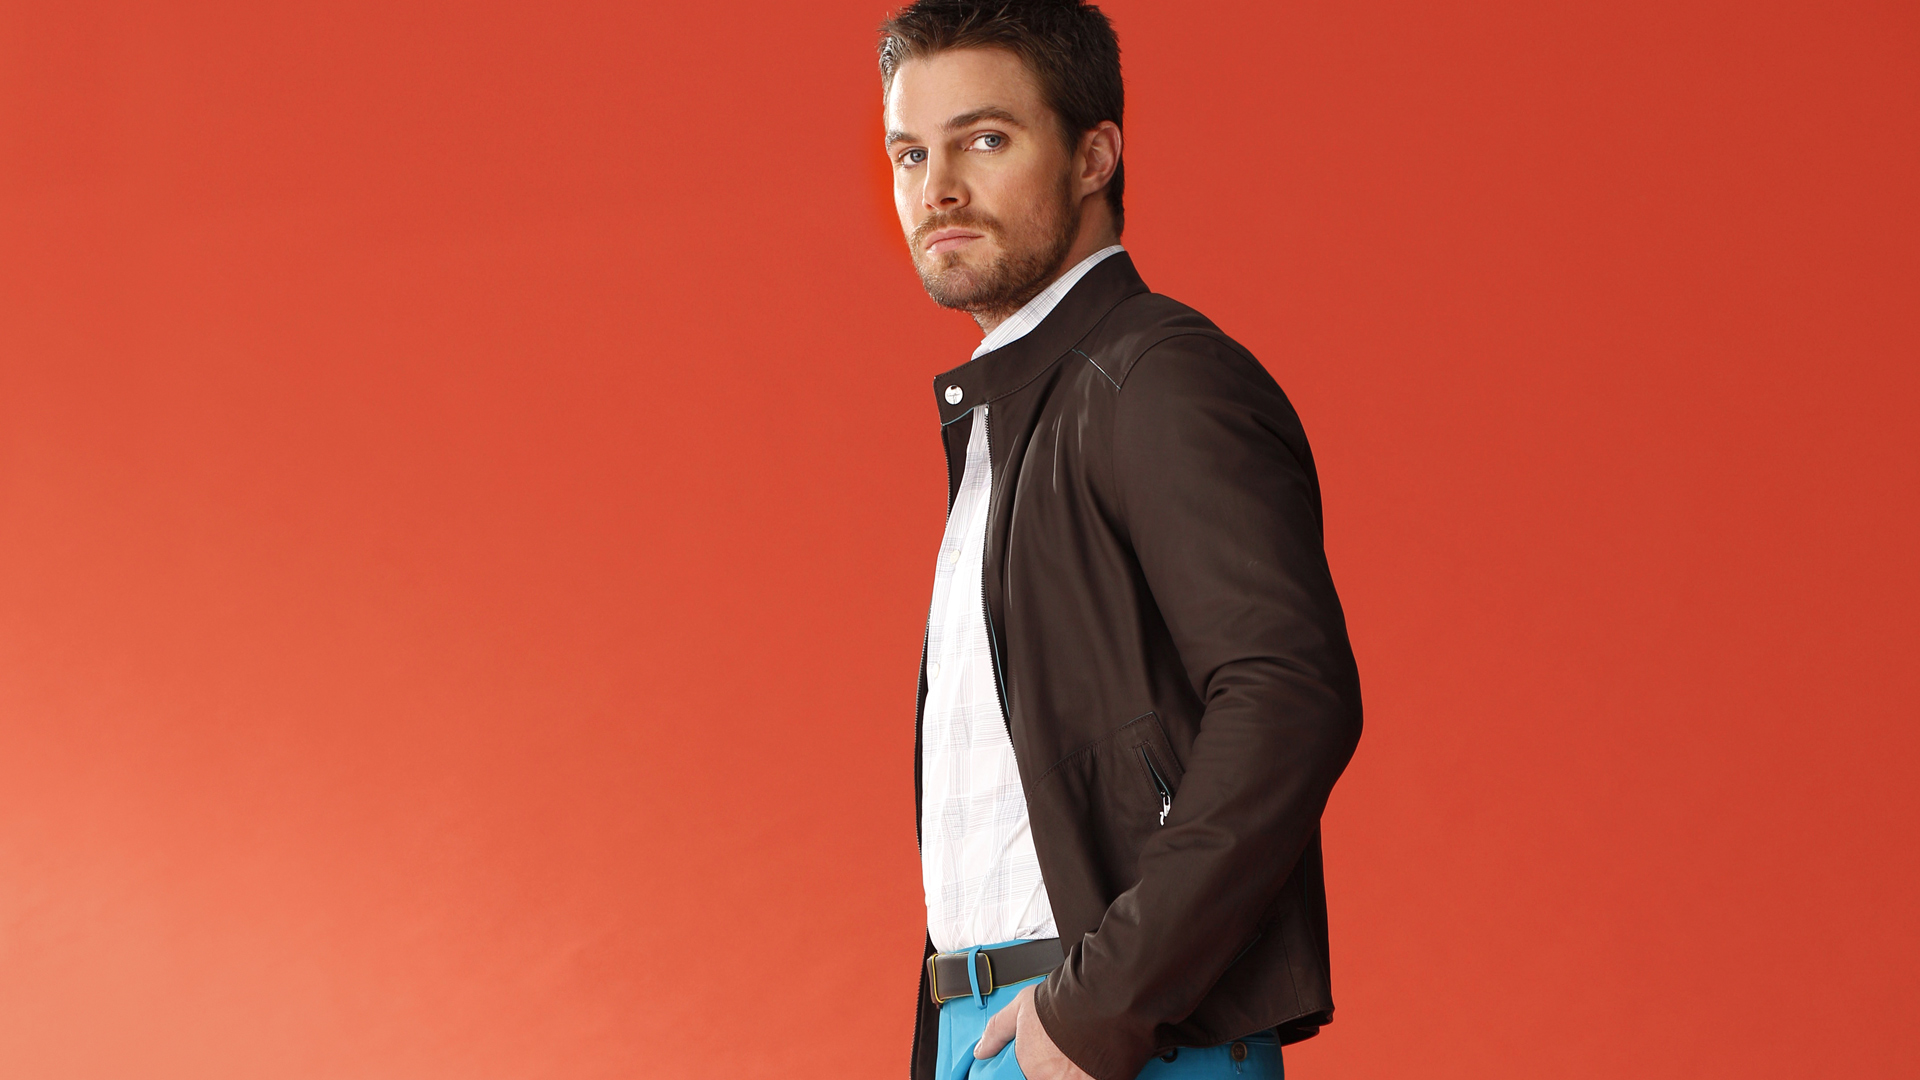 No doubt about it, Stephen Amell is one stylish superhero